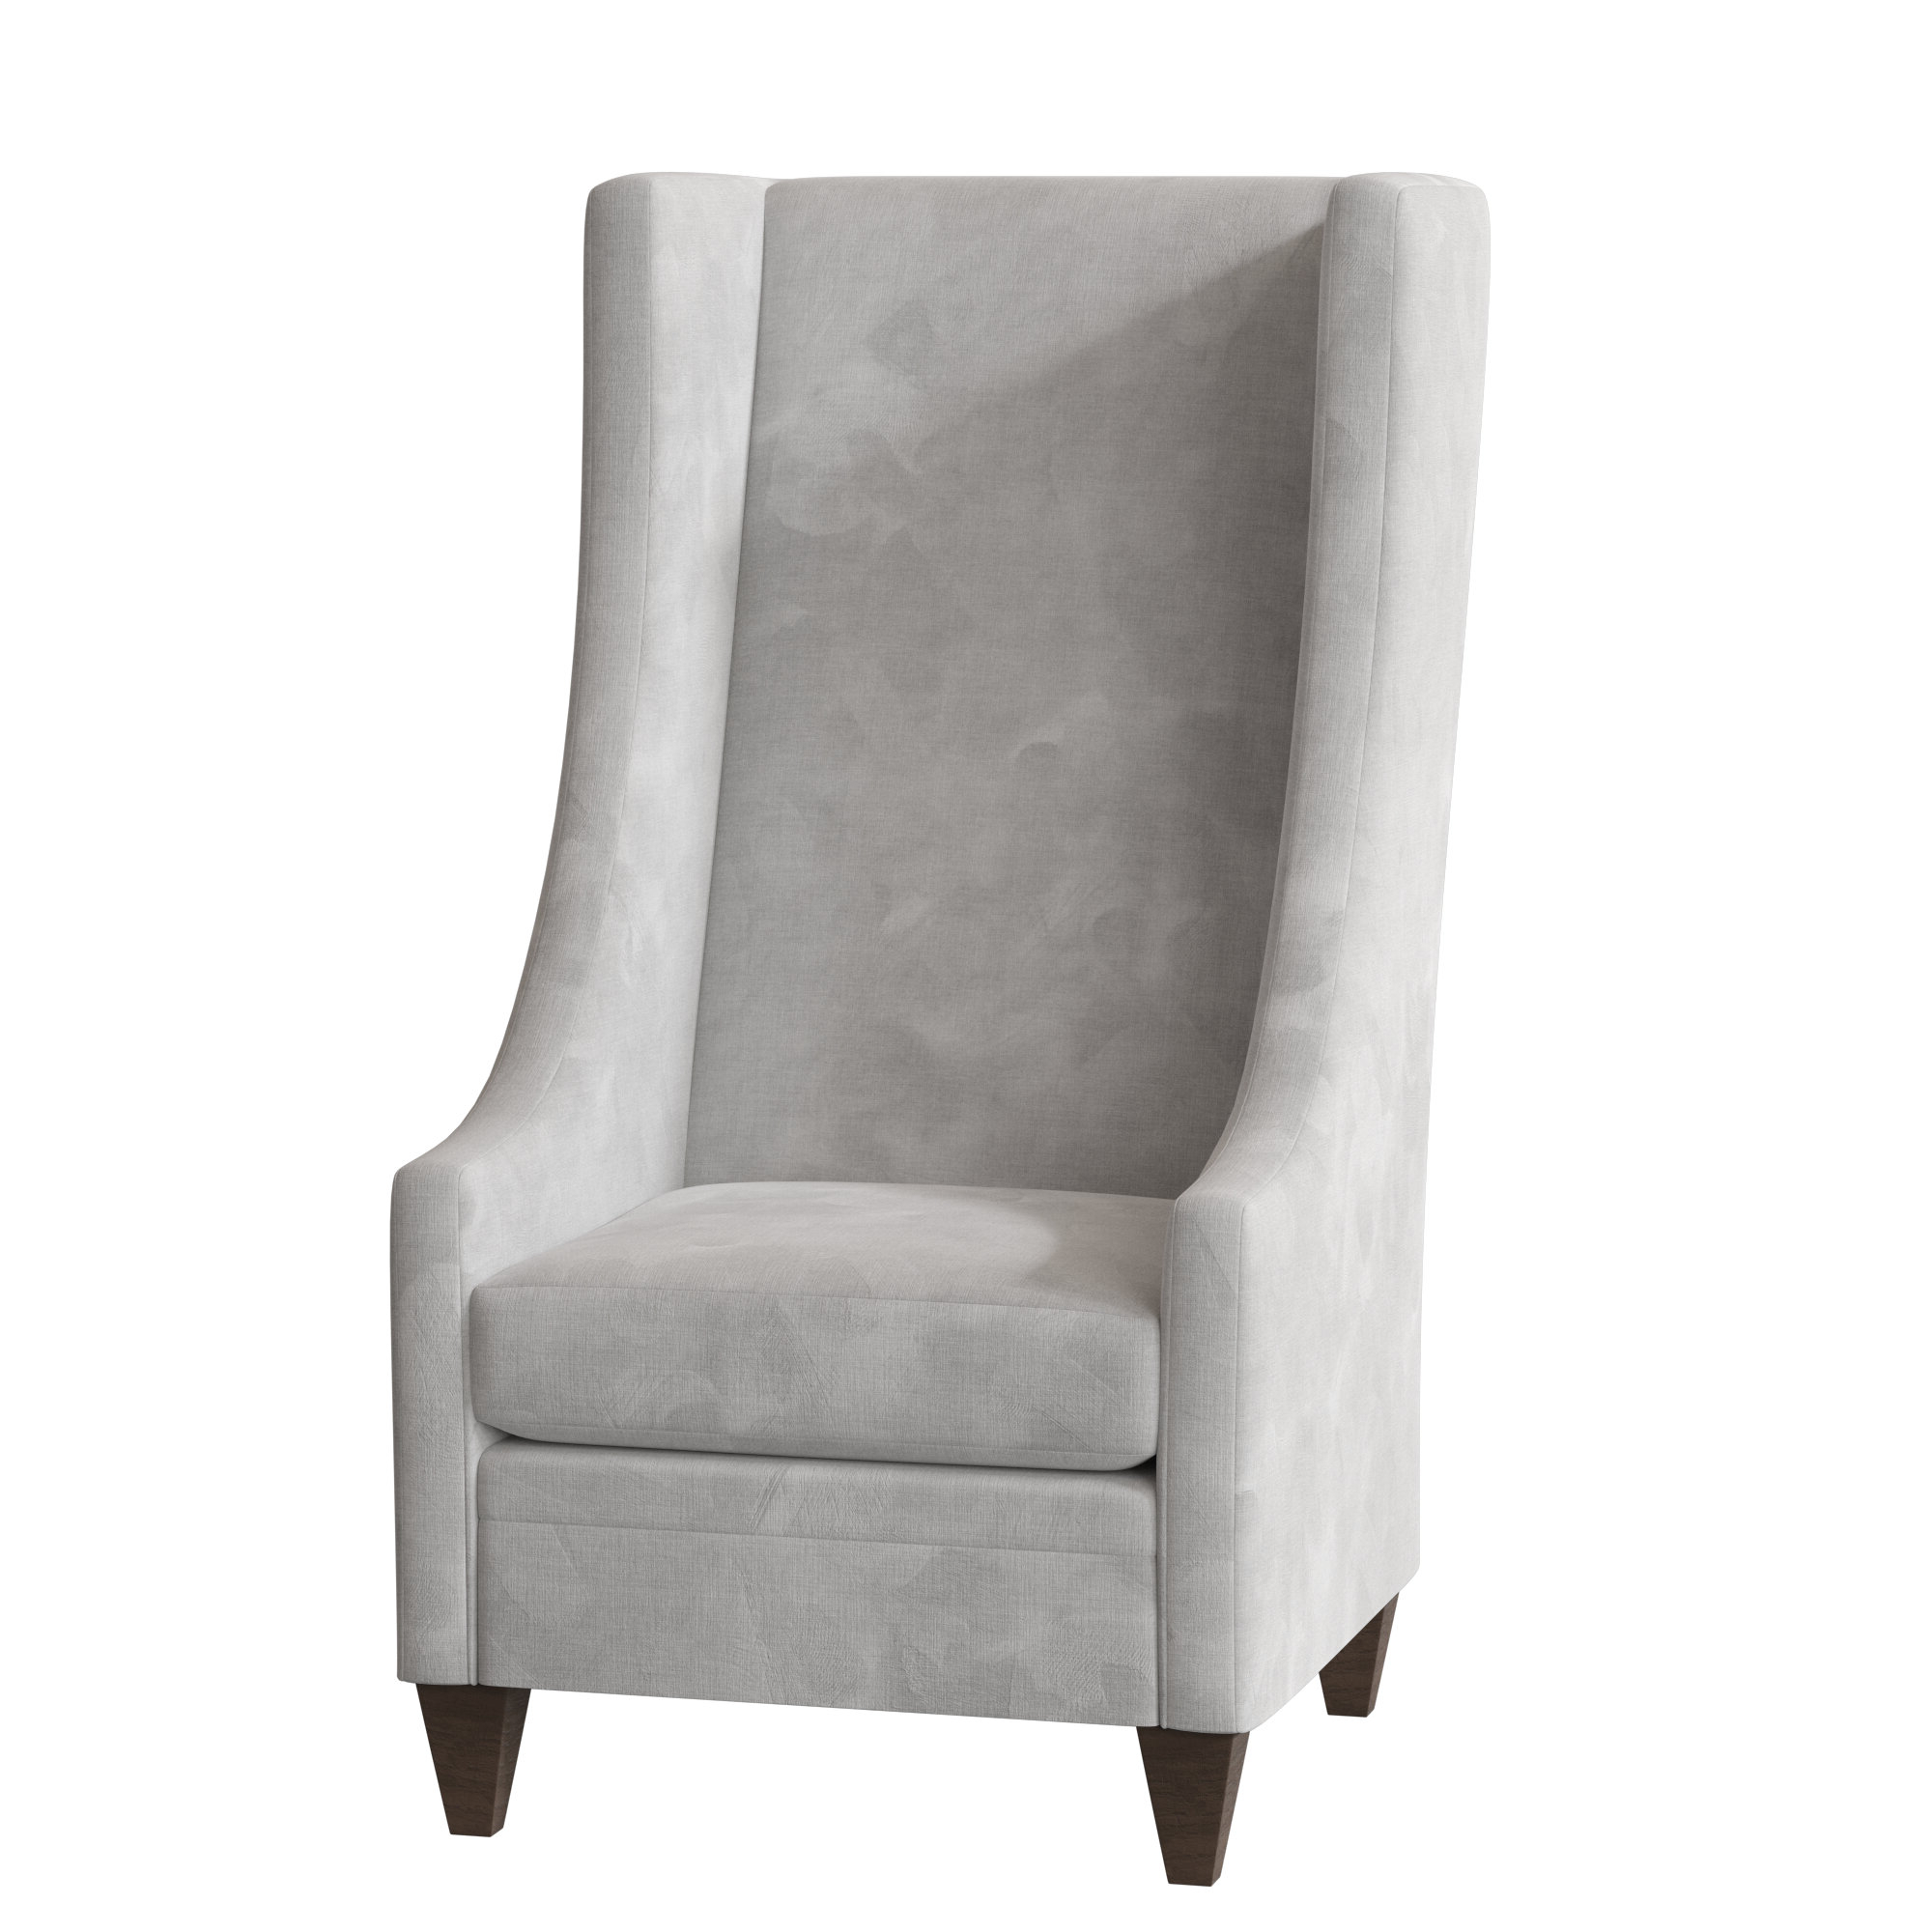 Well Liked Saige Wingback Chairs For Saige Wingback Chair (View 2 of 20)